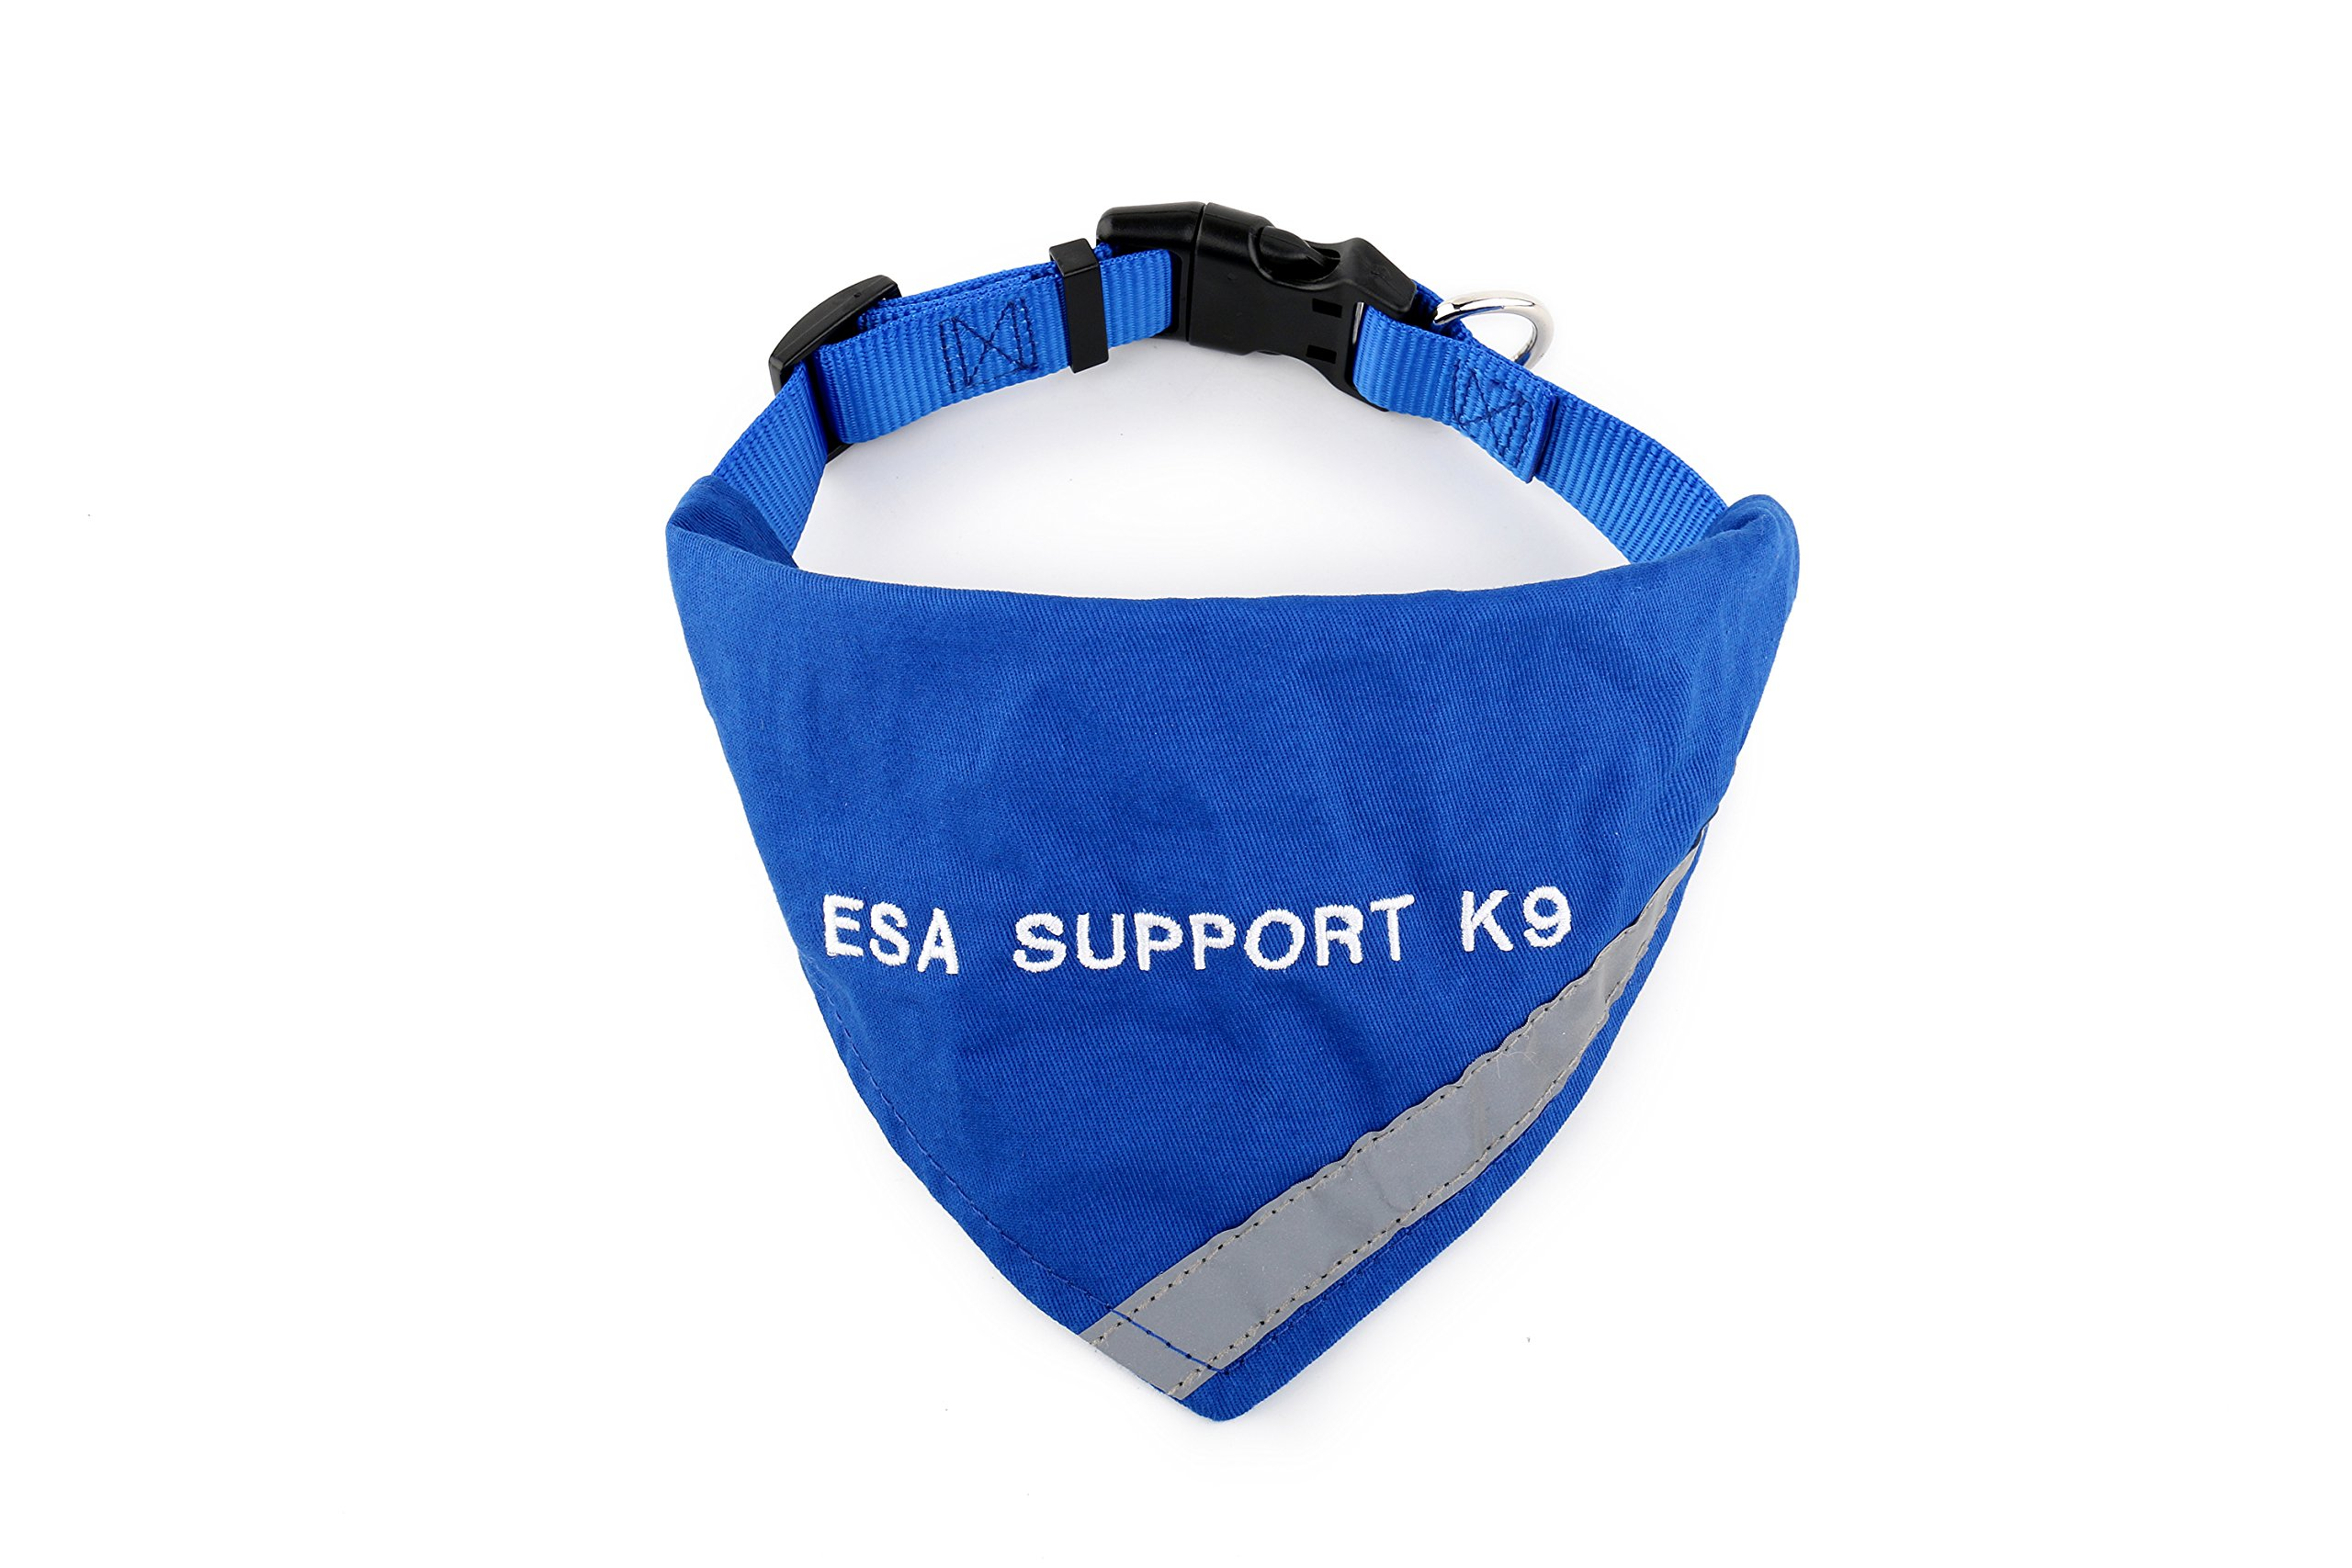 BANDANA embroidered with ''ESA SUPPORT K-9'' | Reflective Strip for pet safety | Built in matching collar to keep bandana secure | Metal ring to attach leash | Four Colors | All Sizes (X-Small to Large)